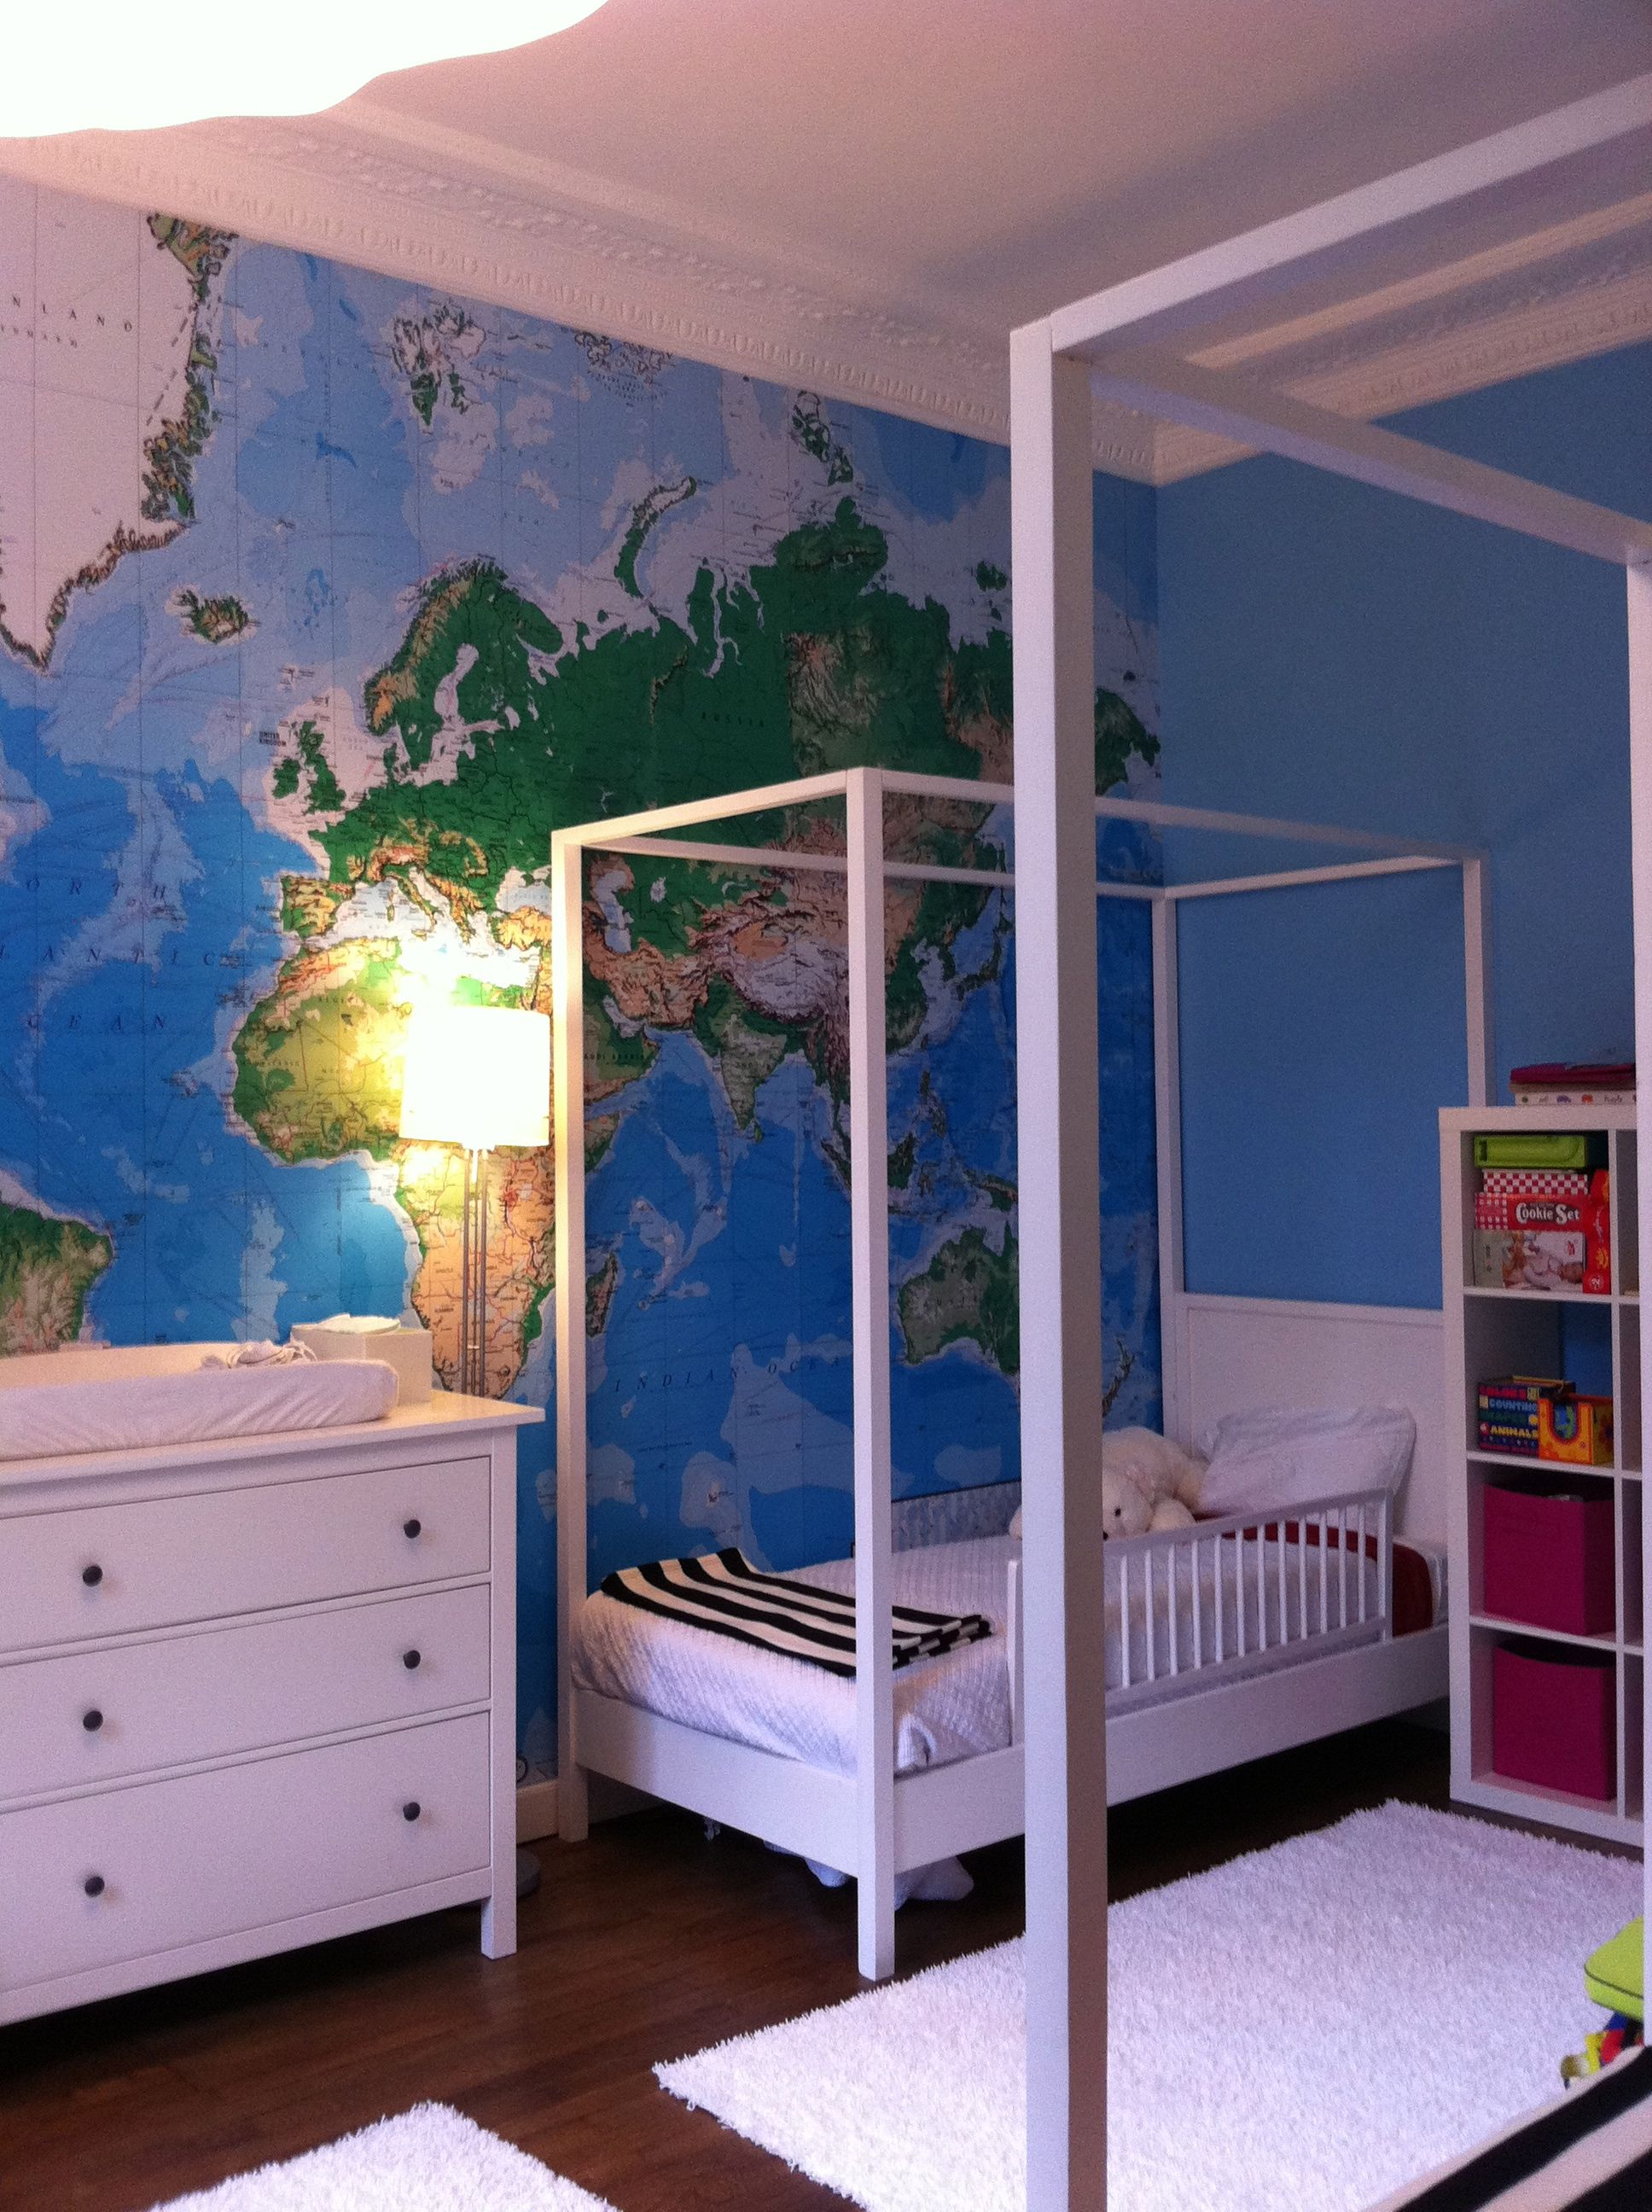 White Furniture With Giant World Map Wallpaper Kids Room Boys